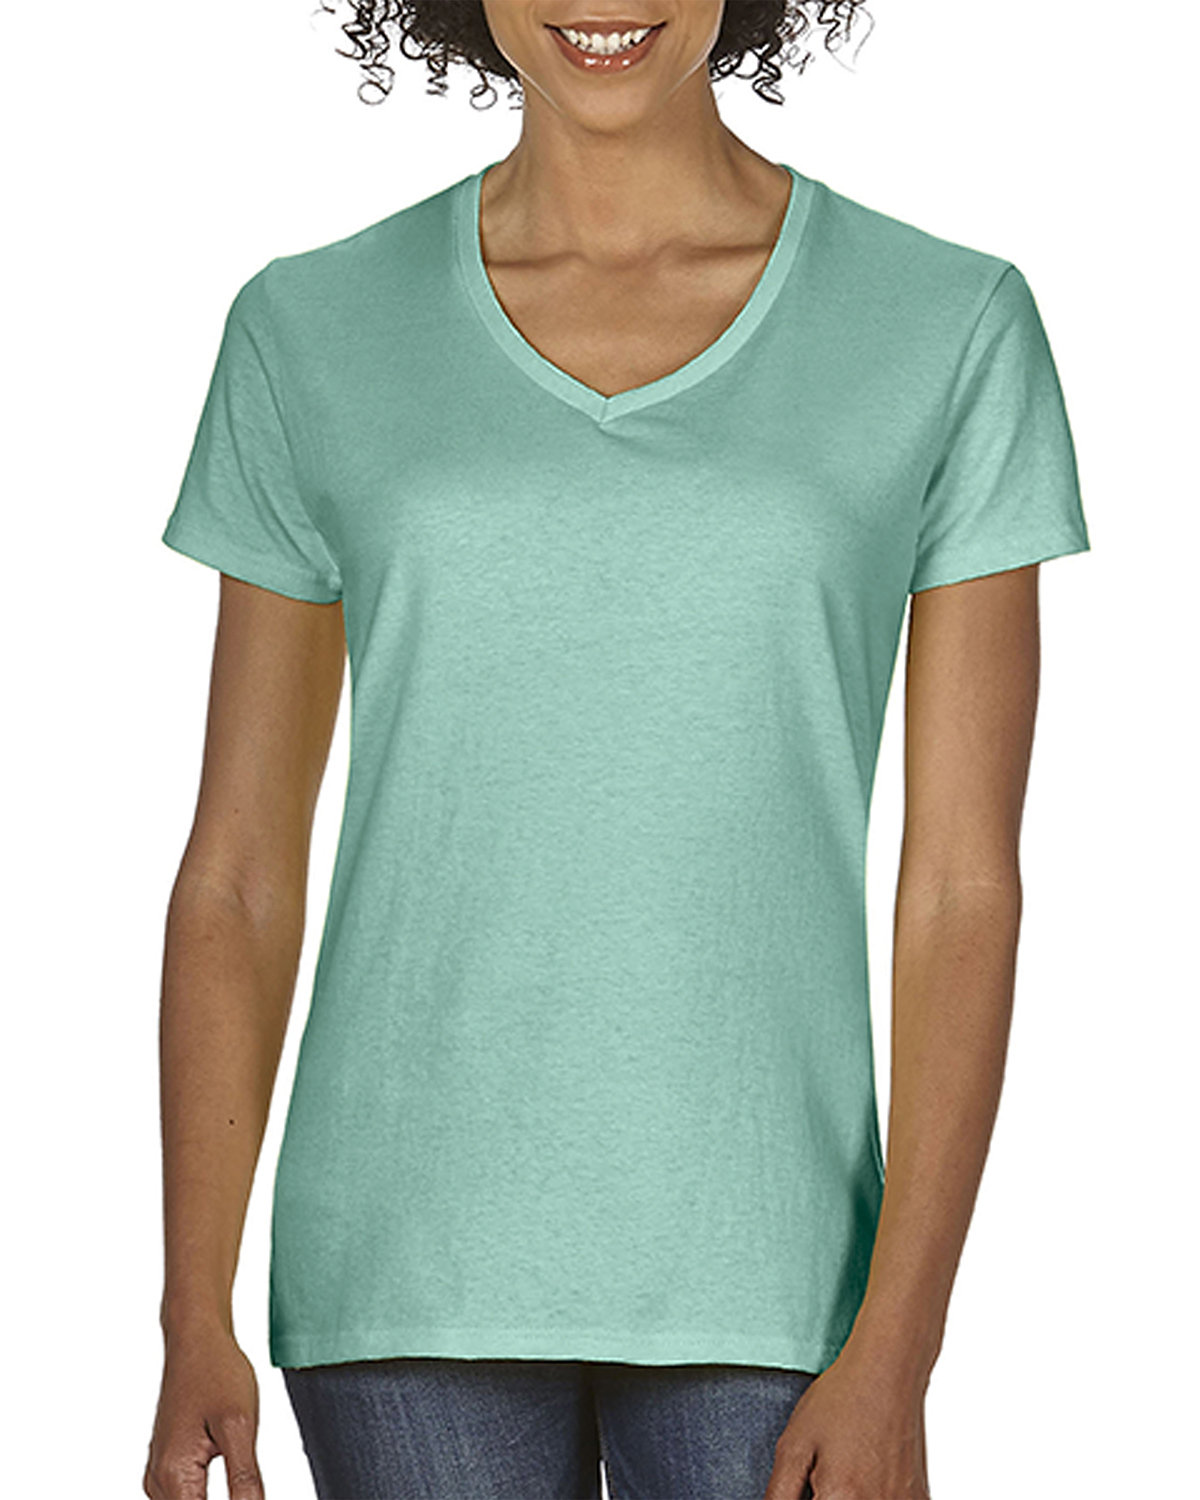 Comfort Colors Ladies'  Midweight RS V-Neck T-Shirt SEAFOAM